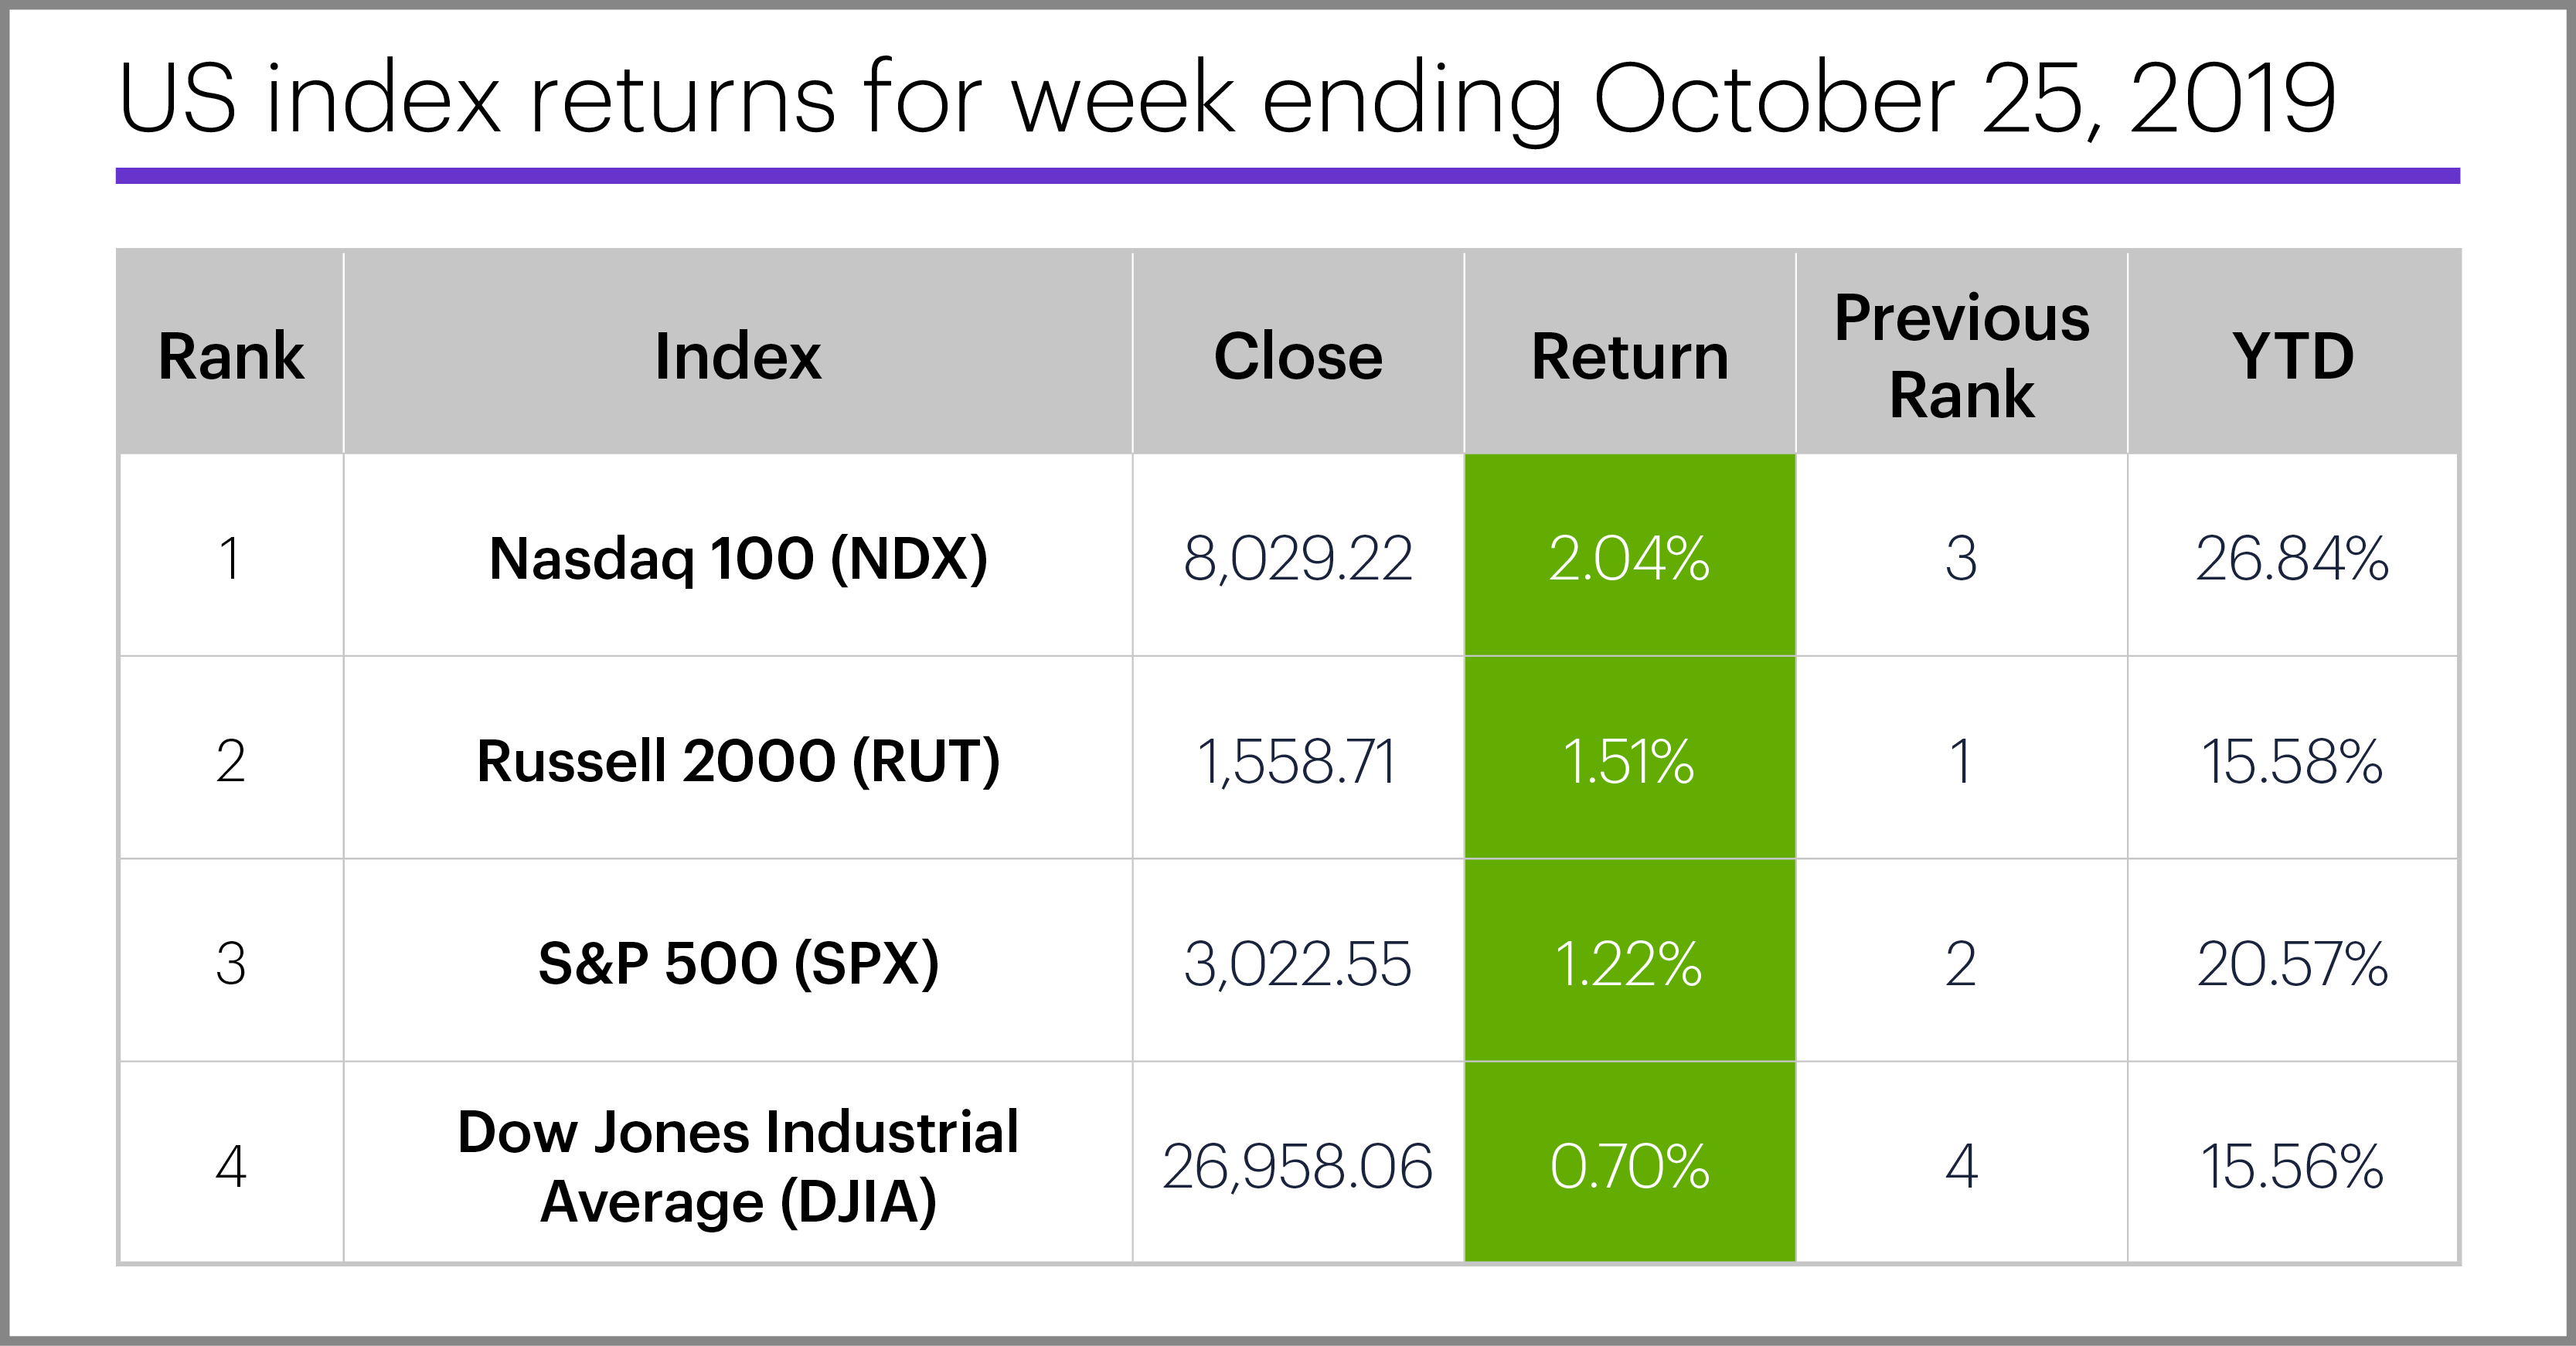 US stock index performance table for week ending 10/25/19. S&P 500 (SPX), Nasdaq 100 (NDX), Russell 2000 (RUT), Dow Jones Industrial Average (DJIA).